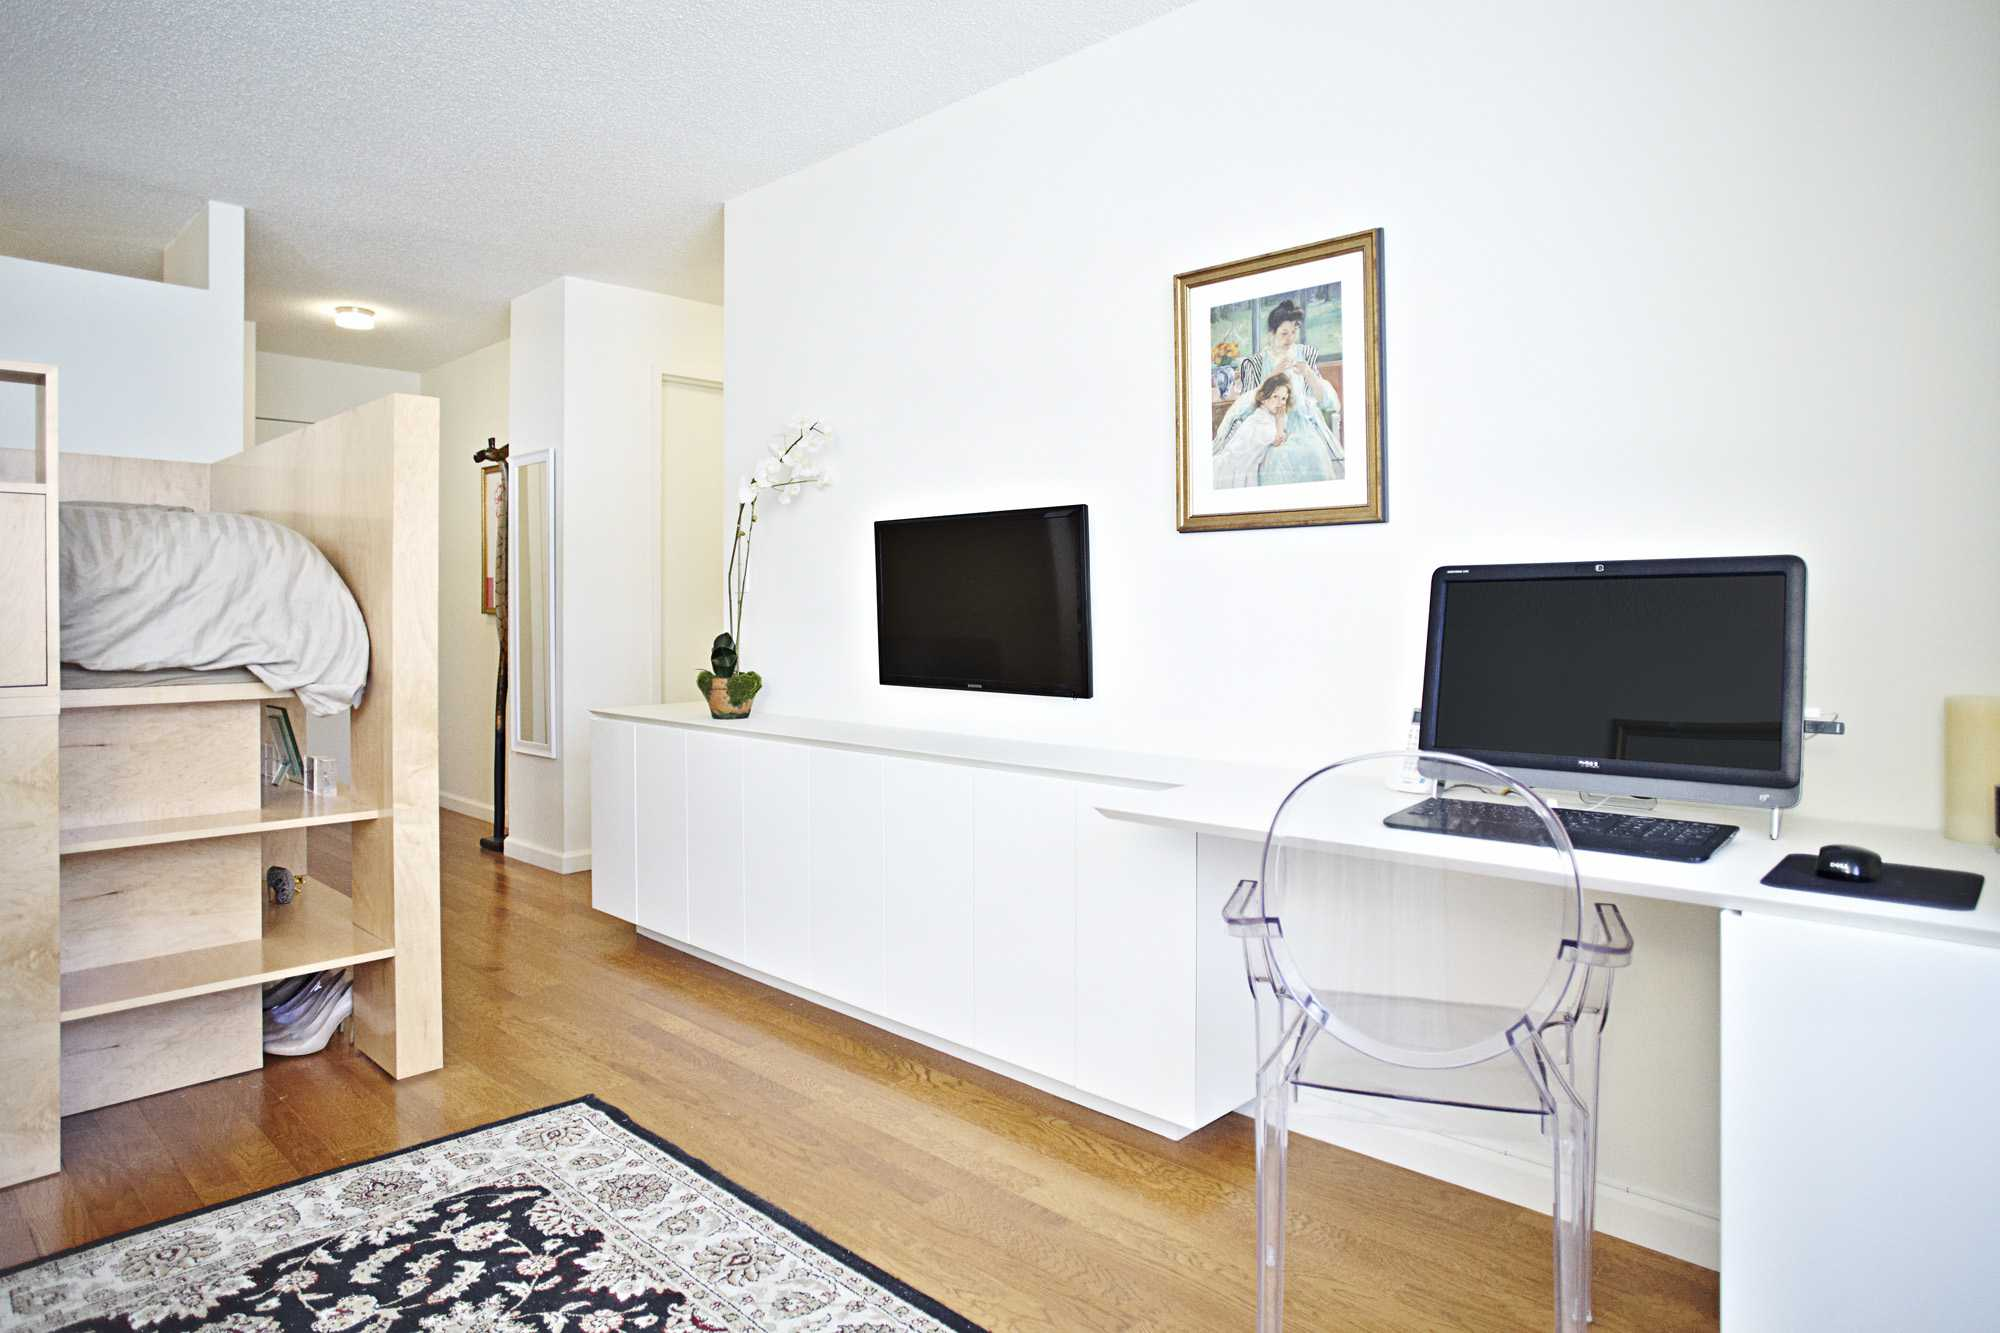 Custom cubby for bed in a studio apartment with television and computer on desk.